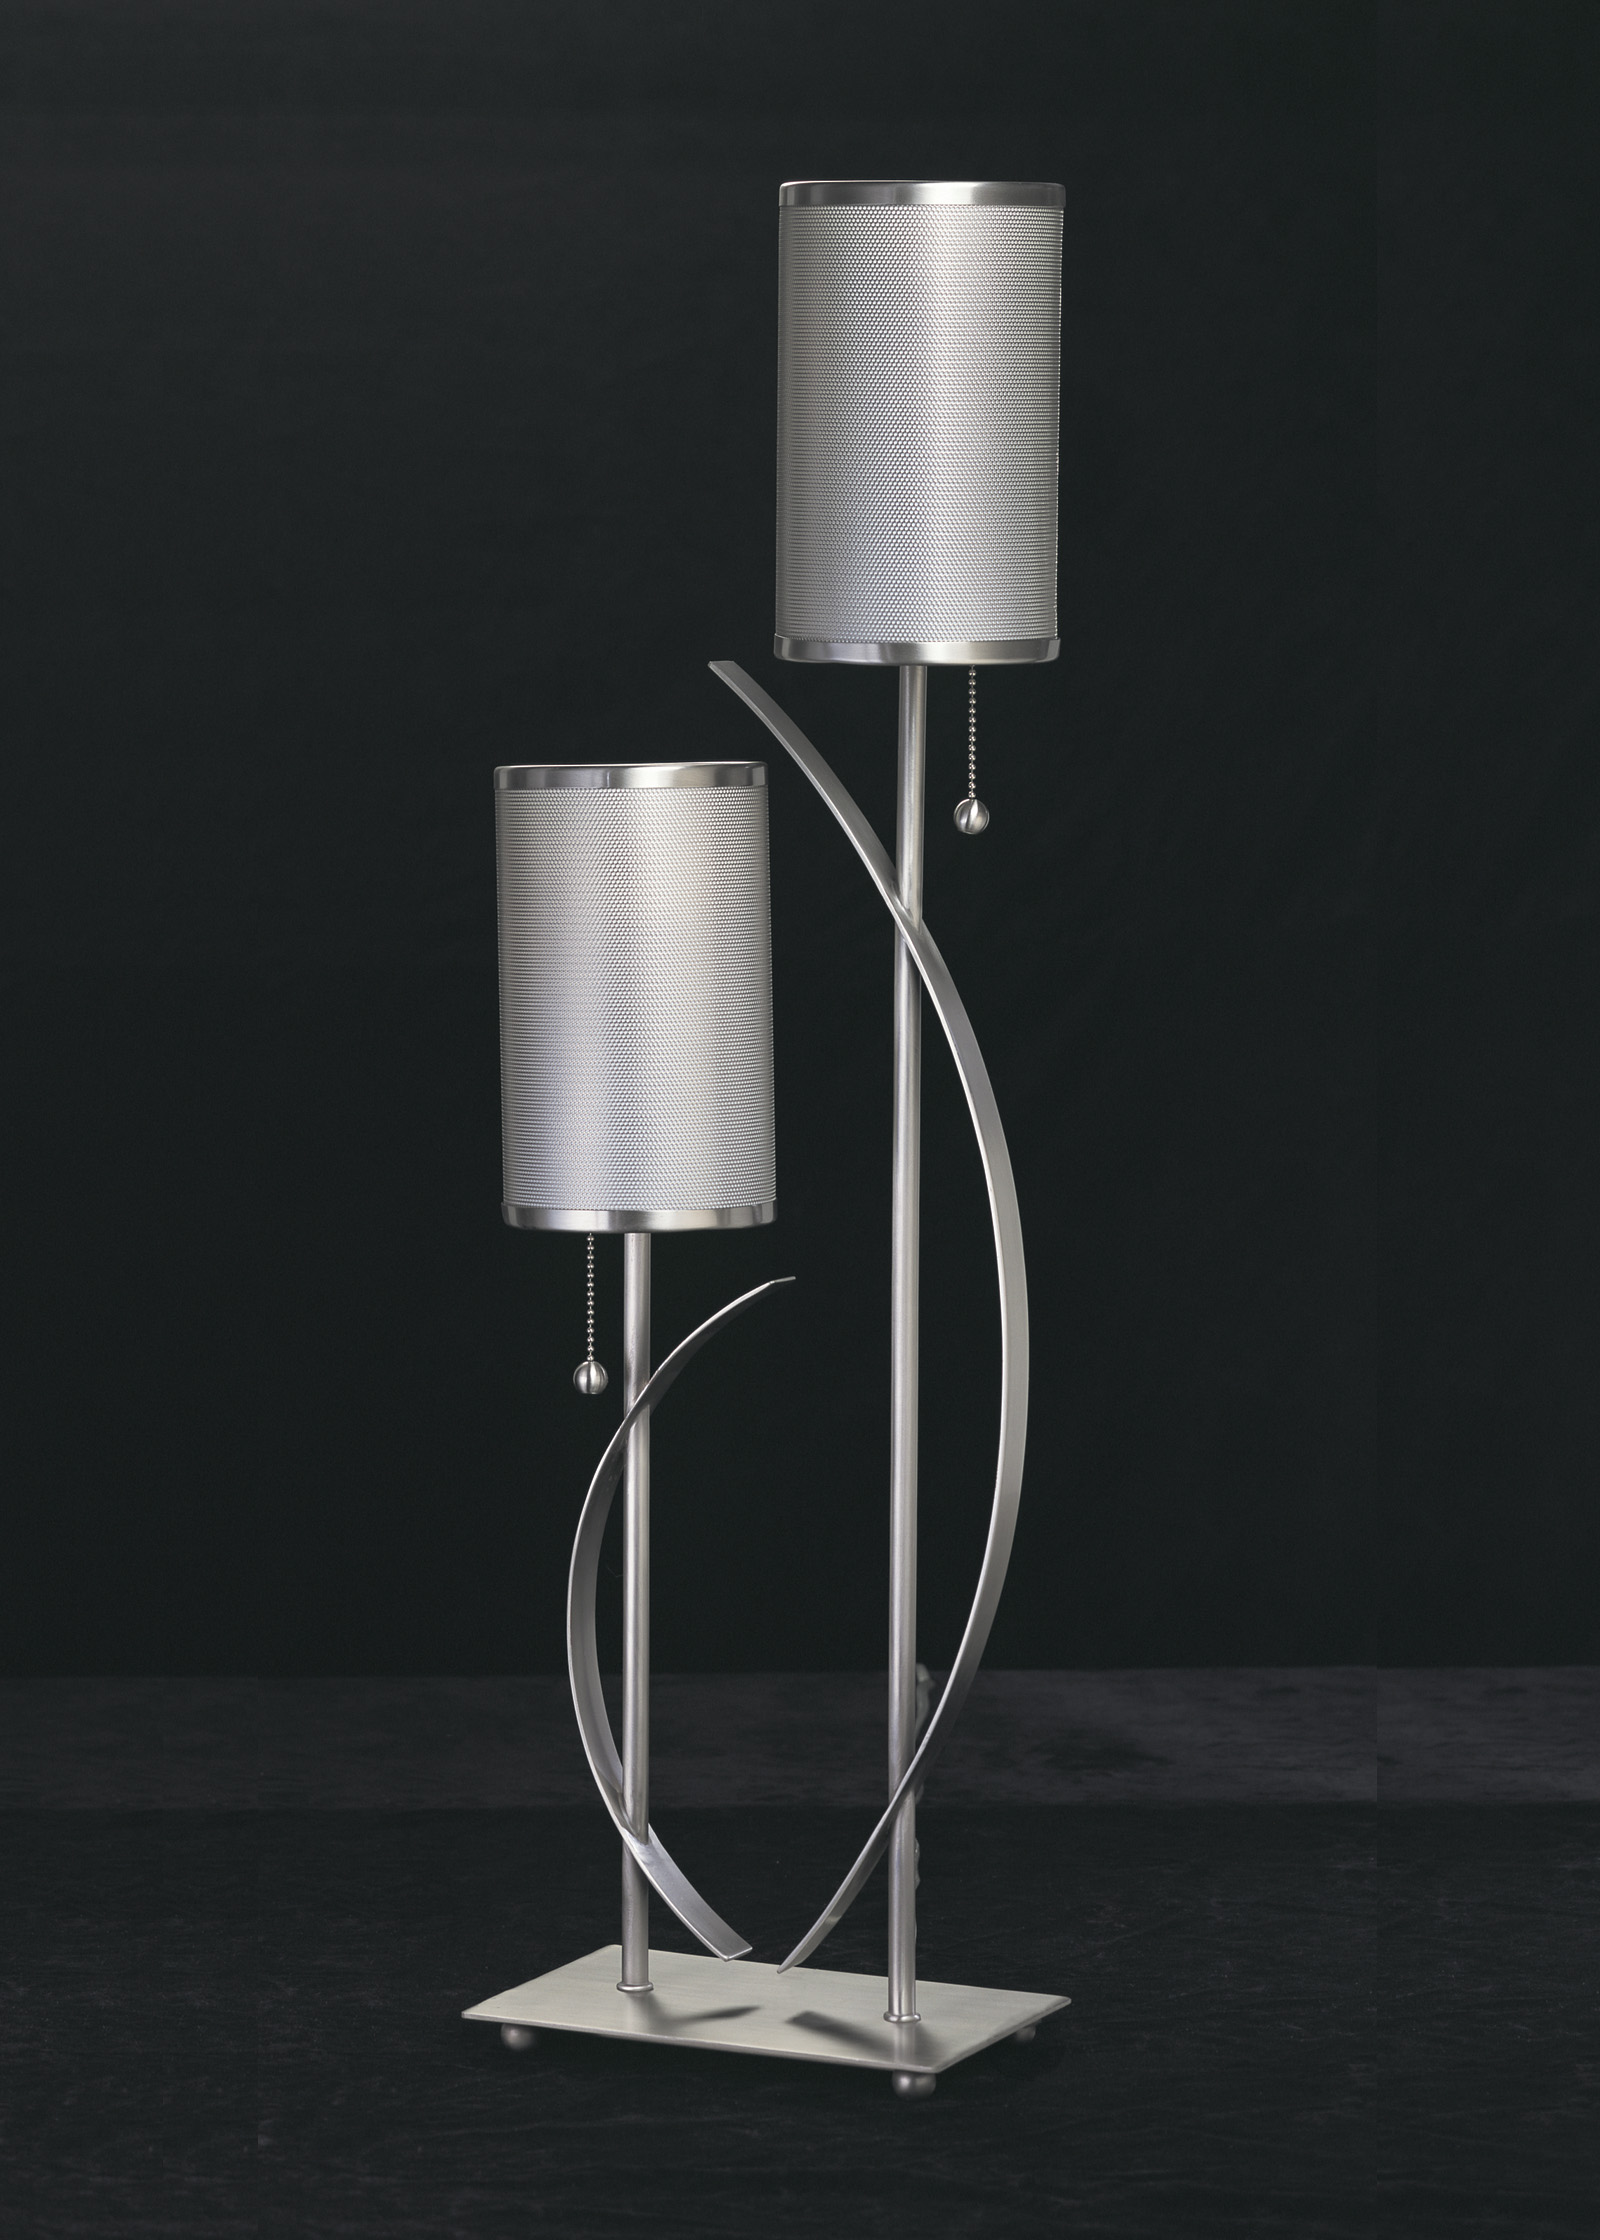 M1069pt 123 Table Lamp By Anthony California Inc Genesis Furniture